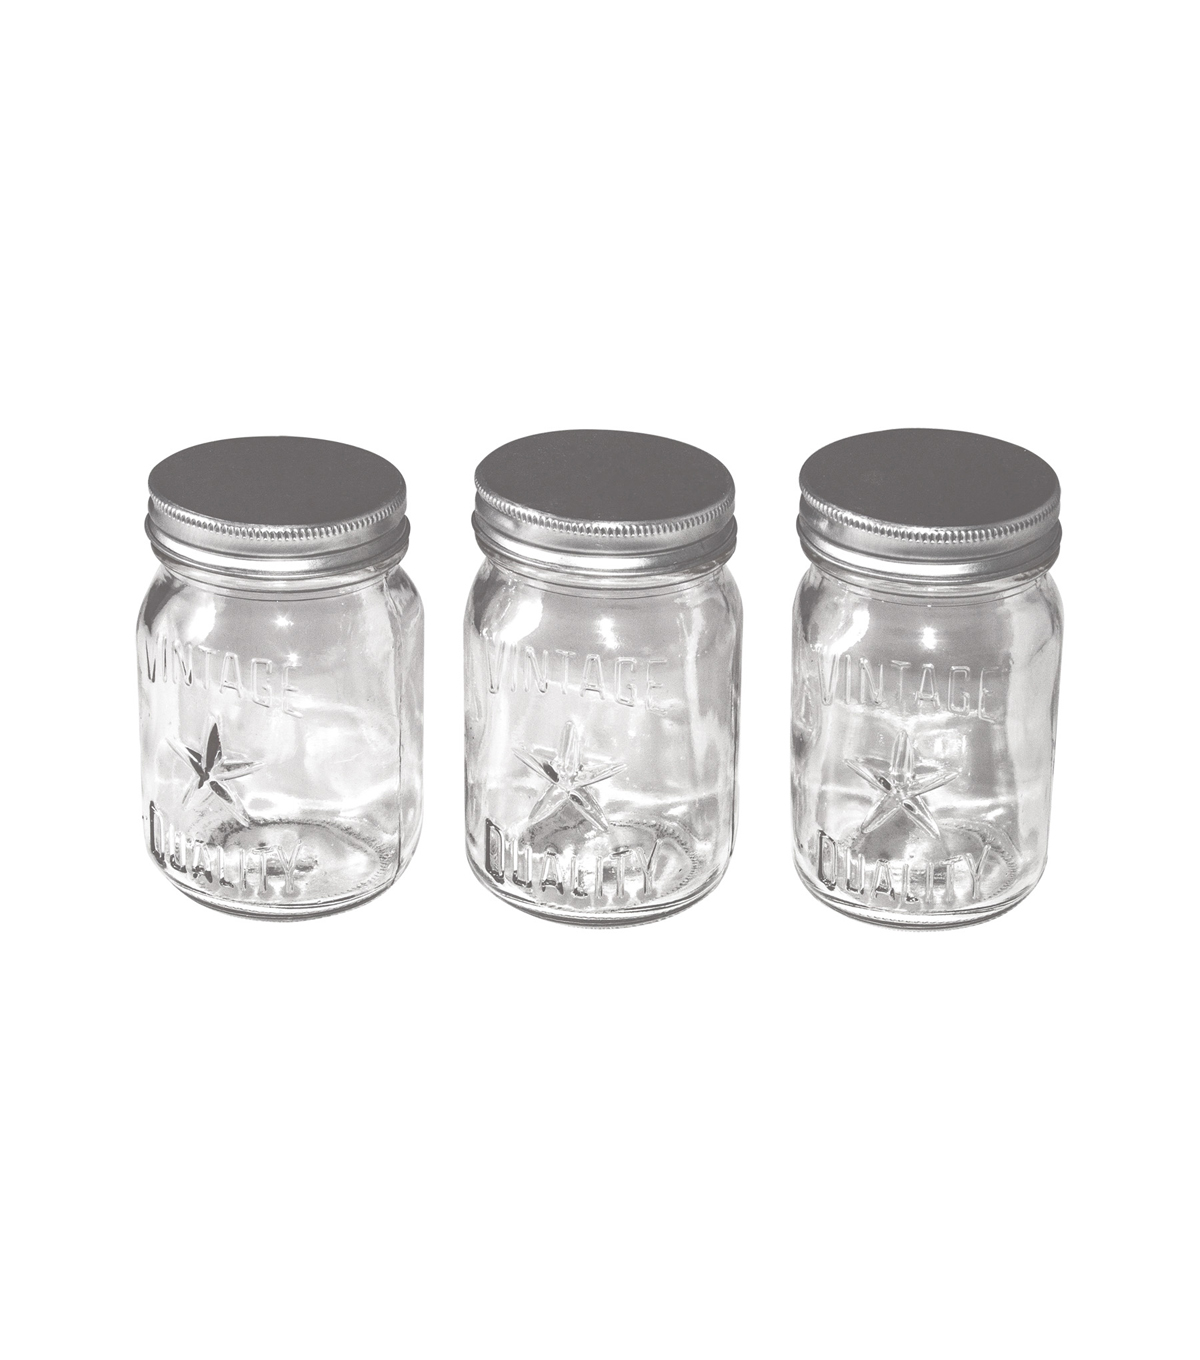 Small glass jars